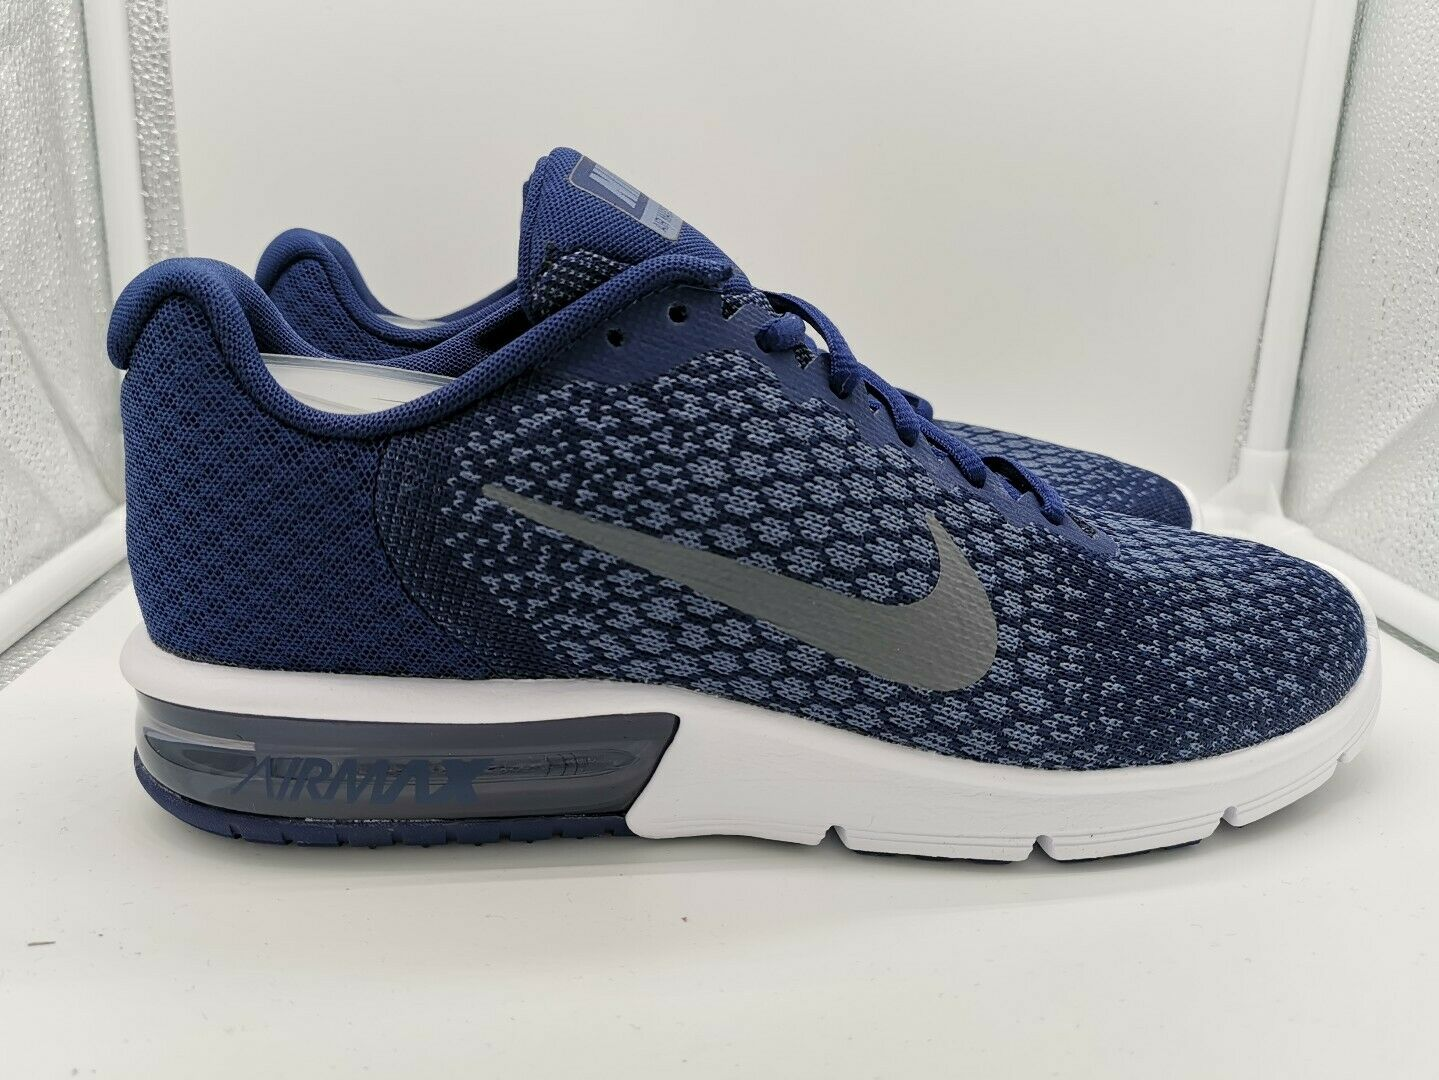 Nike Air Max Sequent 2 Binary blueee Dark Grey 852461-406